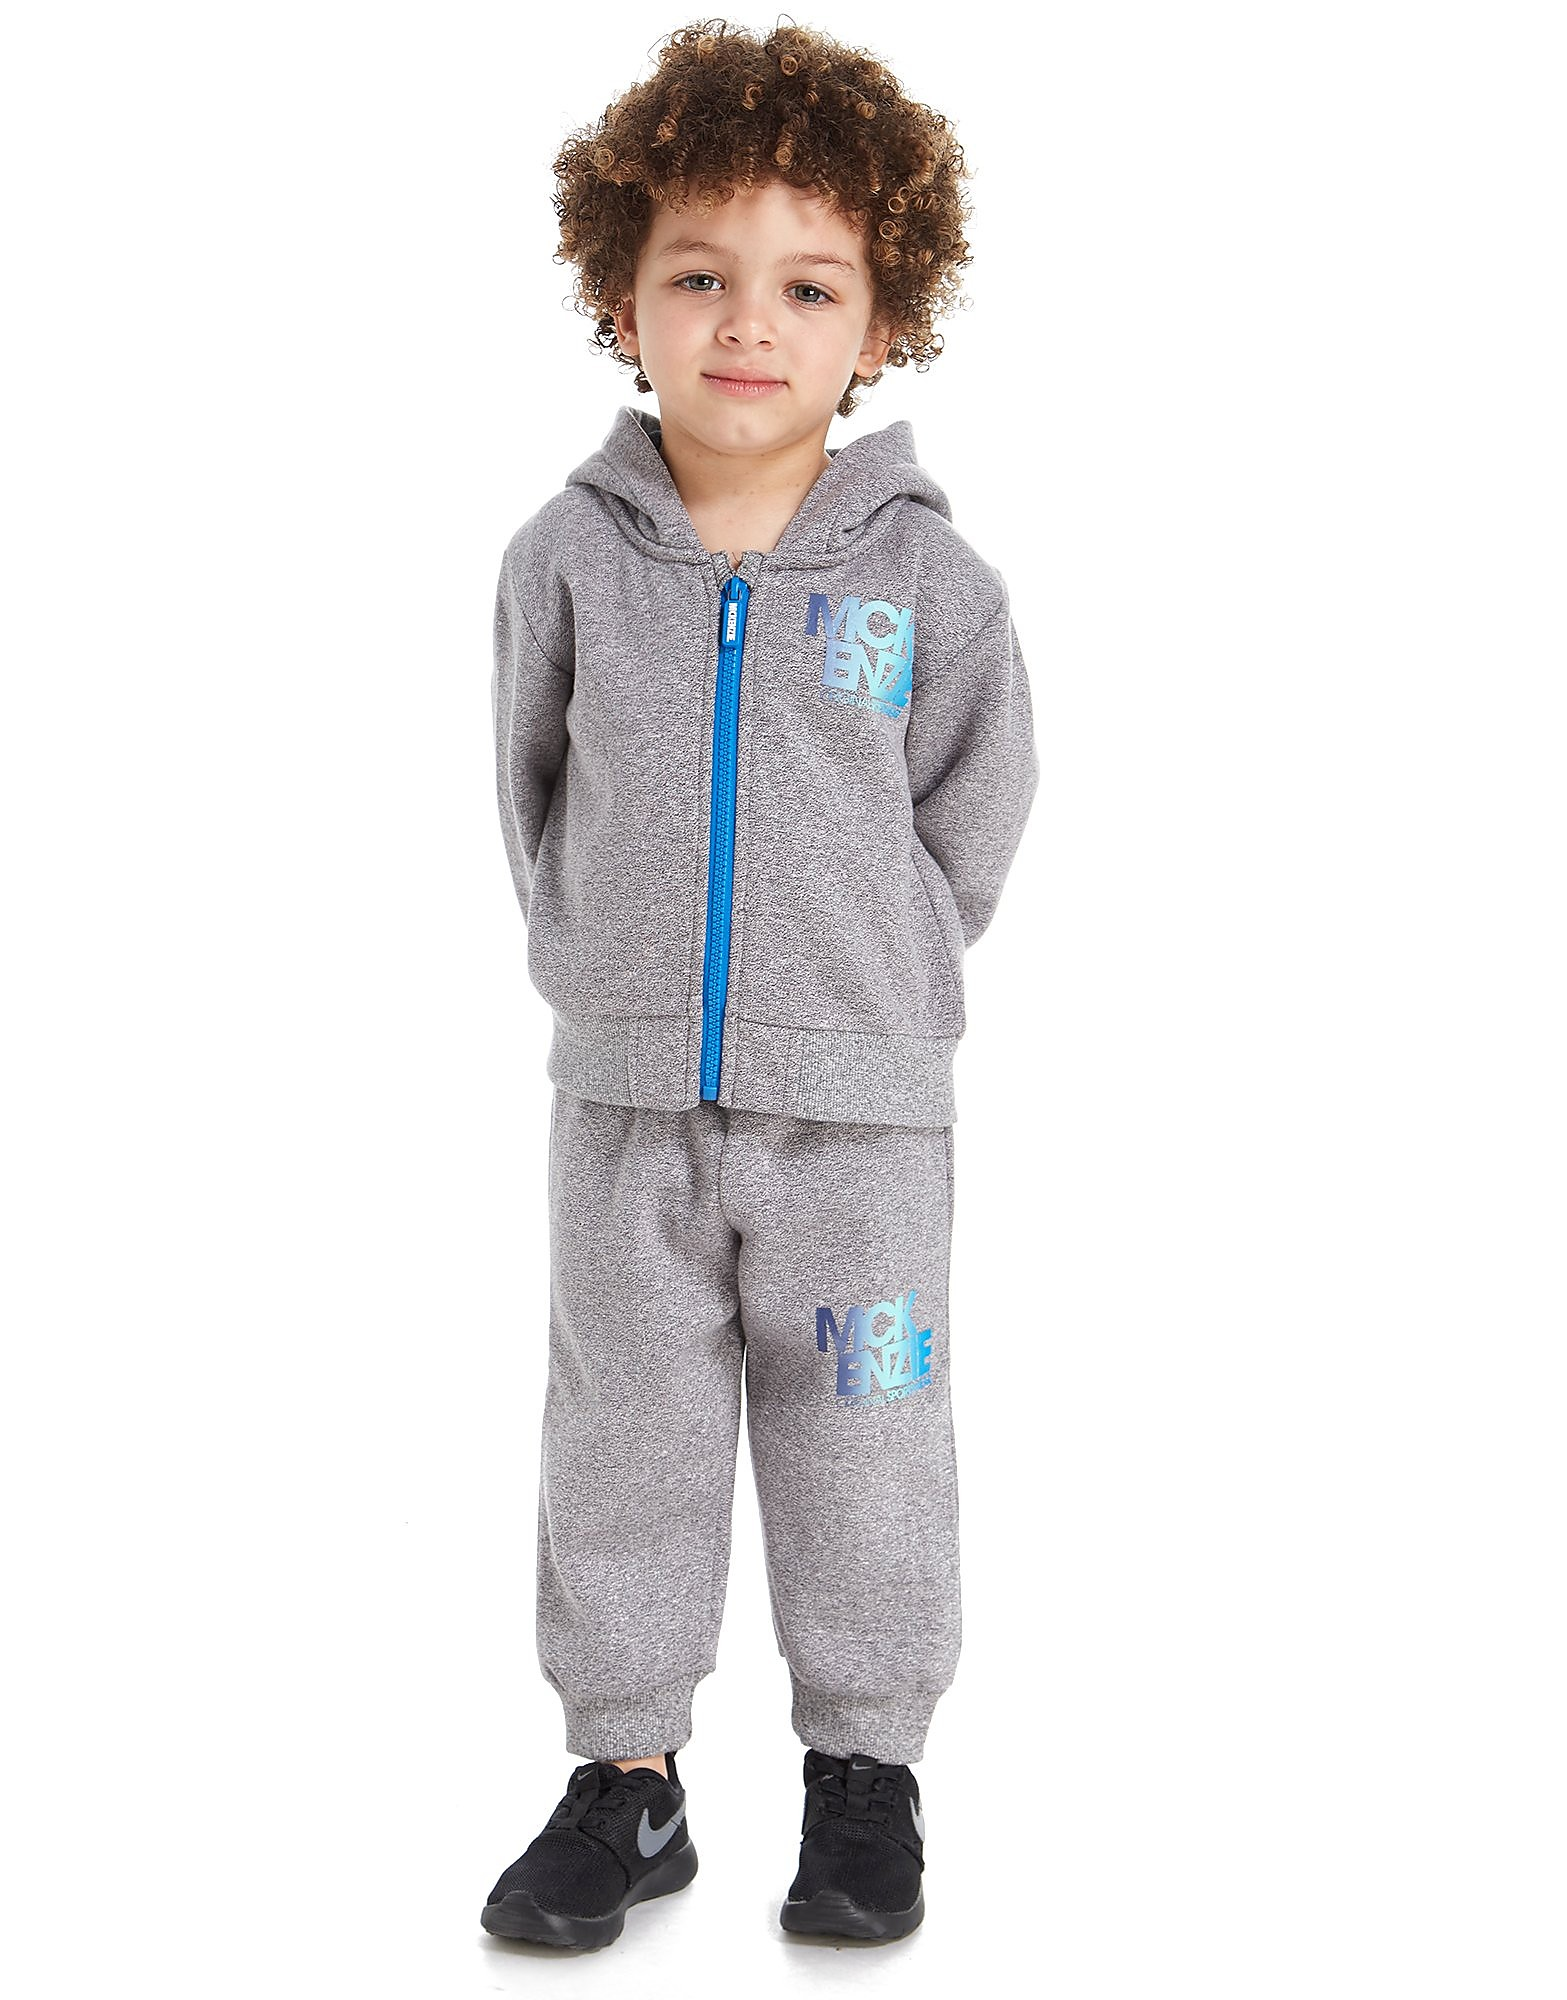 McKenzie Waldo Fleece Suit Infant